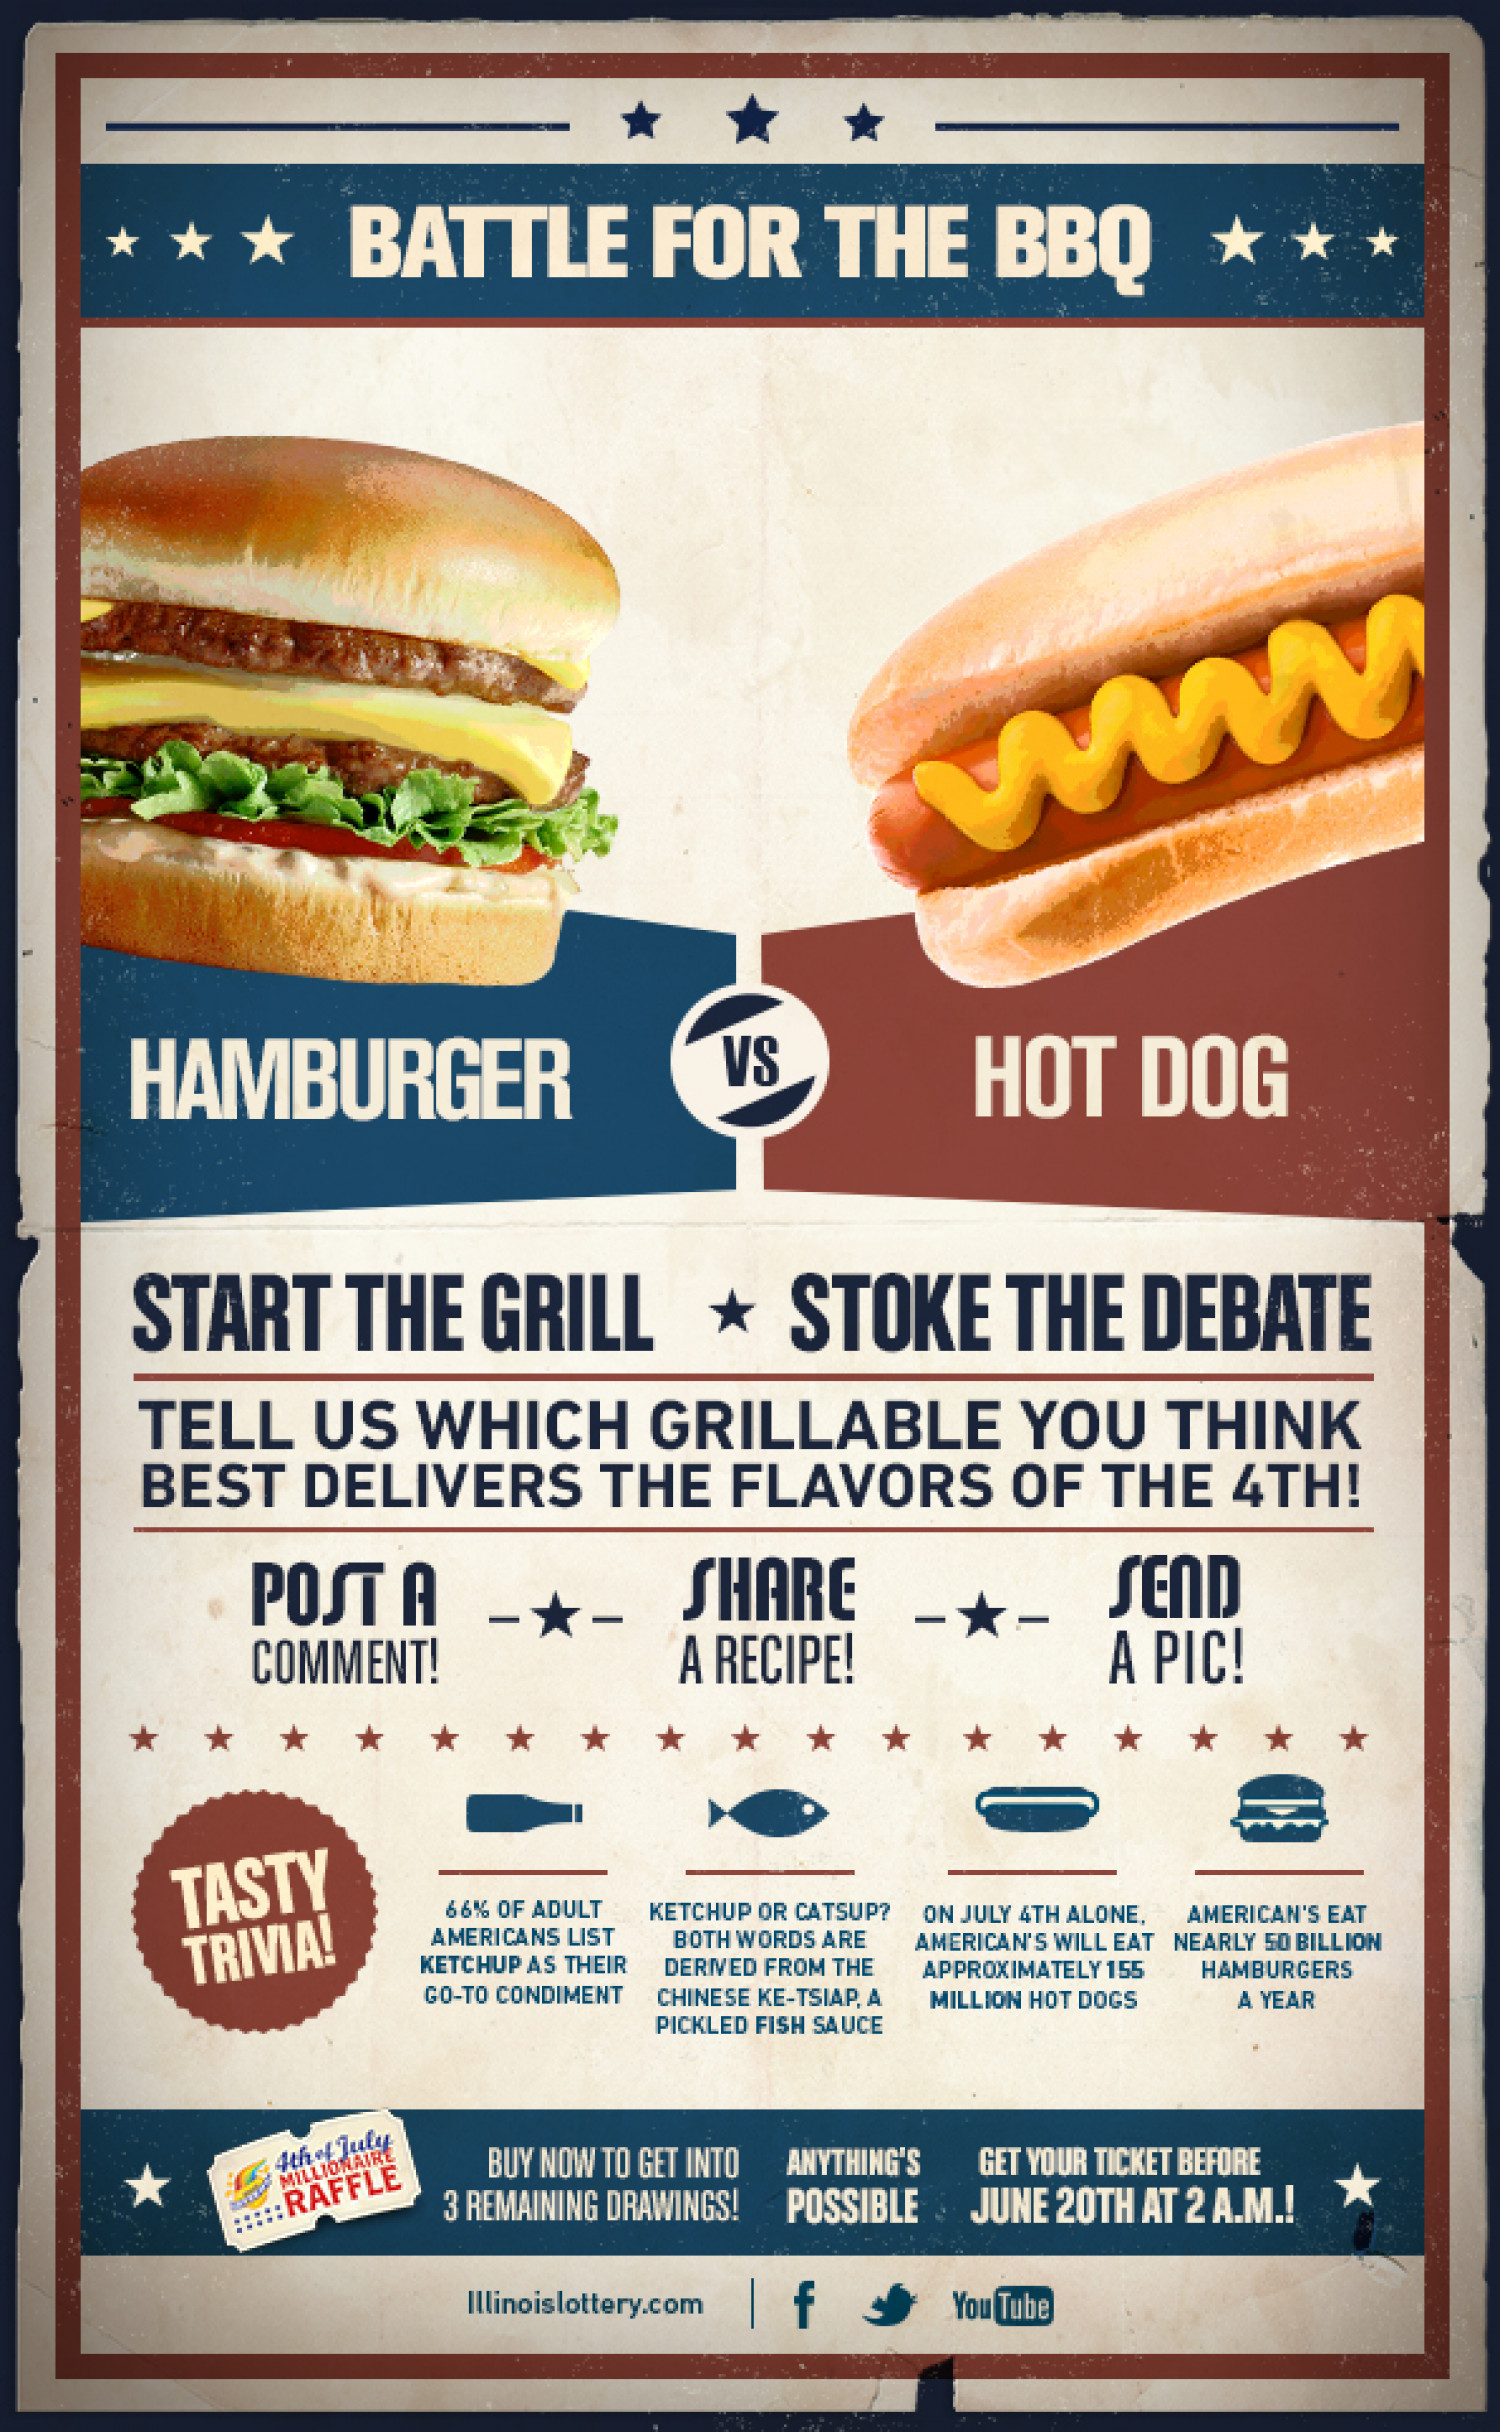 Battle of the BBQ Infographic